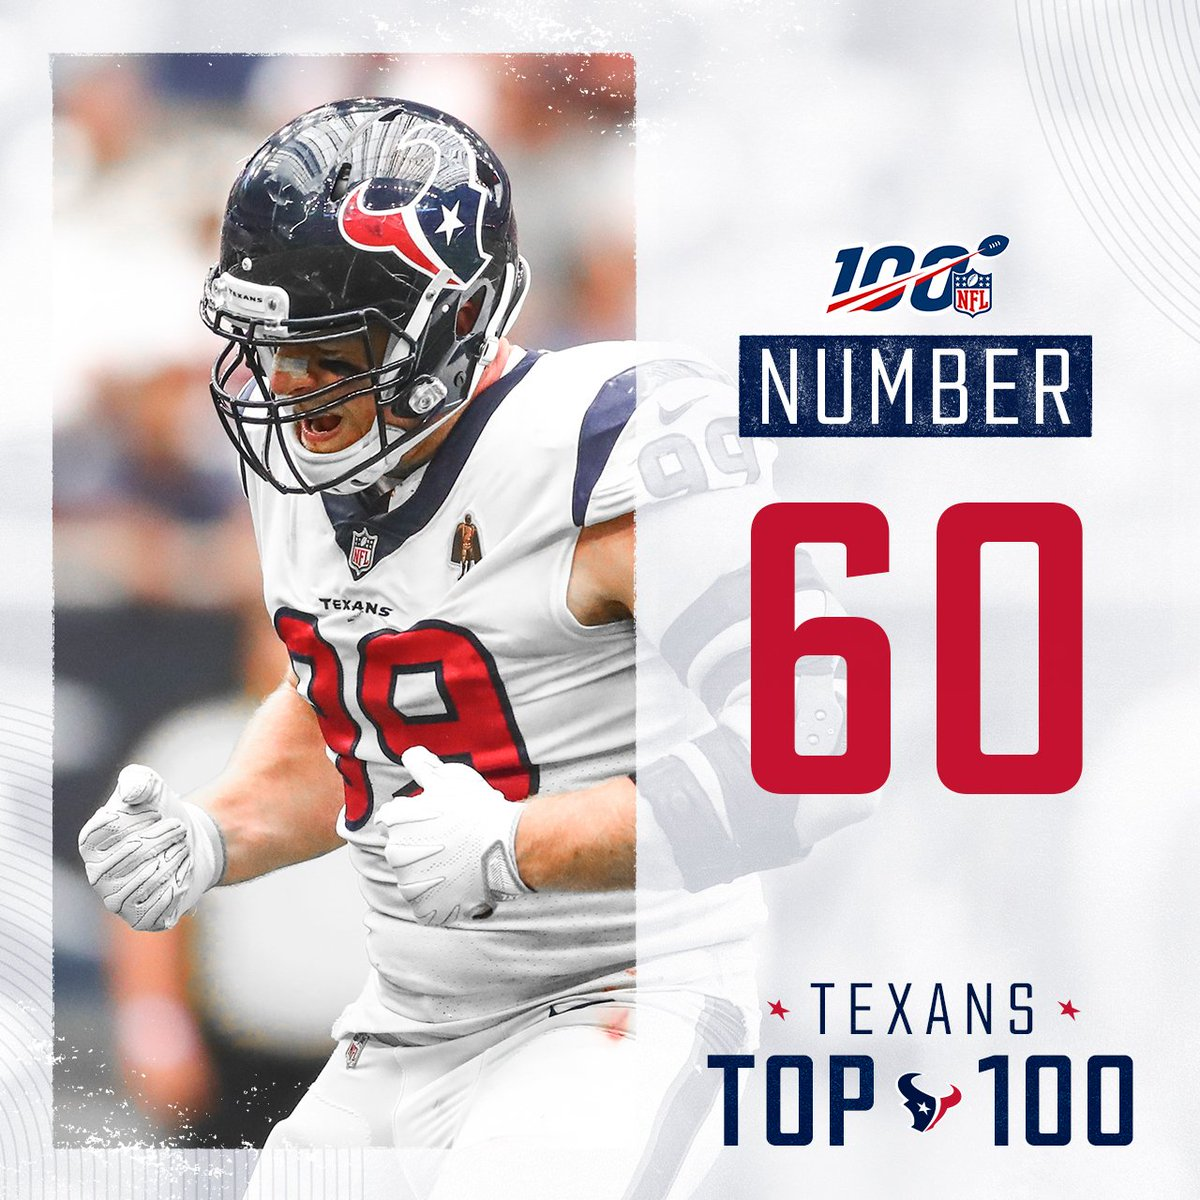 After back-to-back injured seasons, @JJWatt returned in 2018 with 16 sacks and first-team All-Pro honors.  #TexansTop100 » No. 60